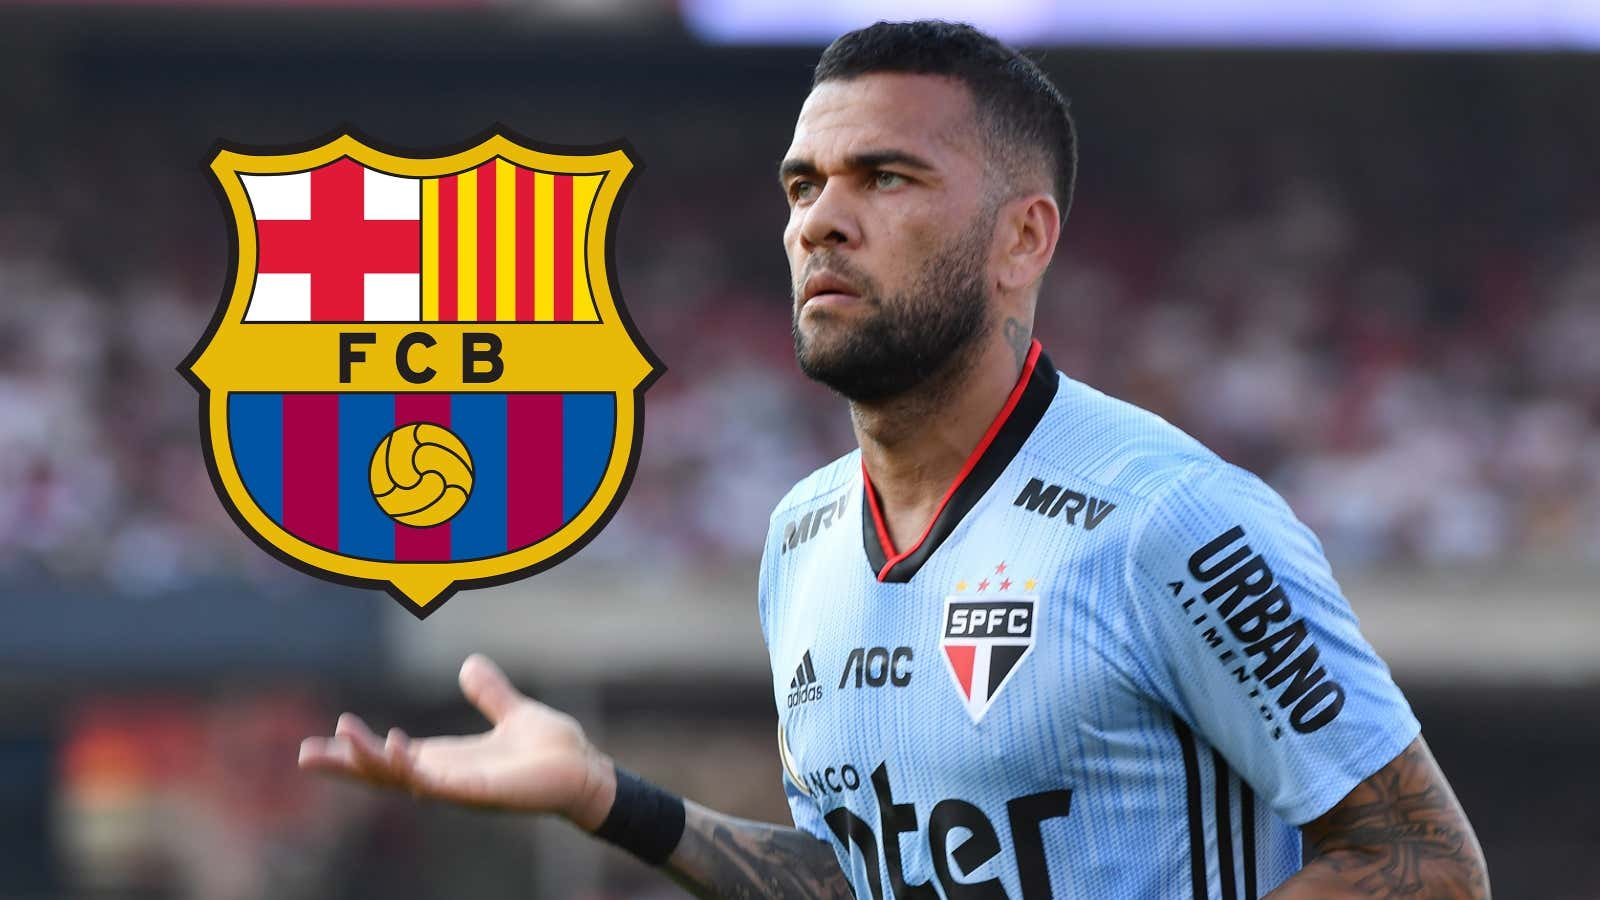 'If Barcelona need me, they just have to call' – Dani Alves open to return to Camp Nou